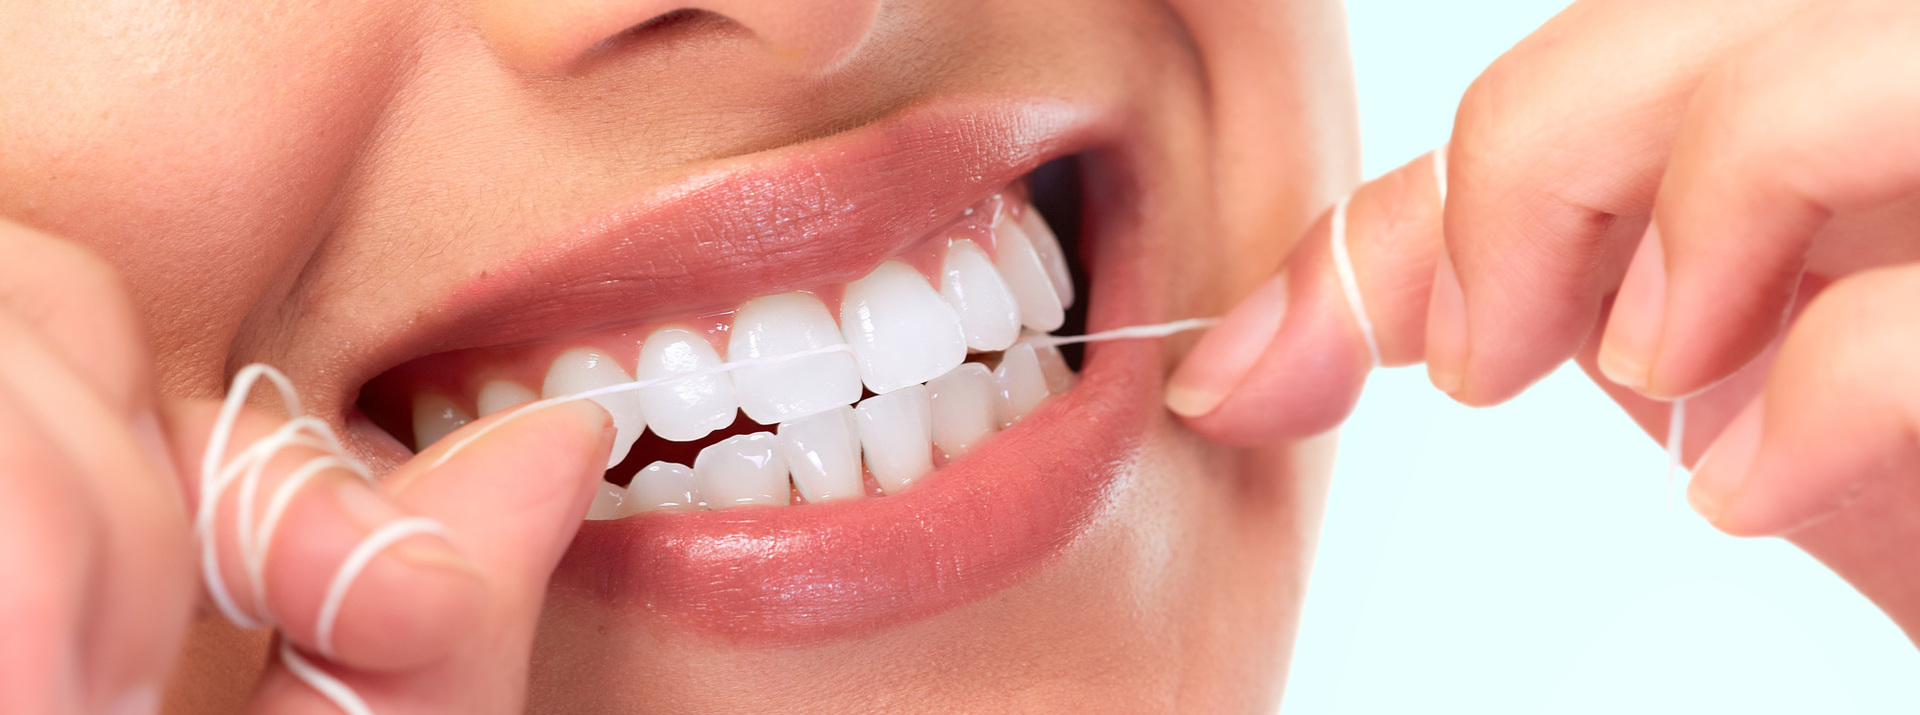 Dental Veneers or Lumineers? Which is Right For You?